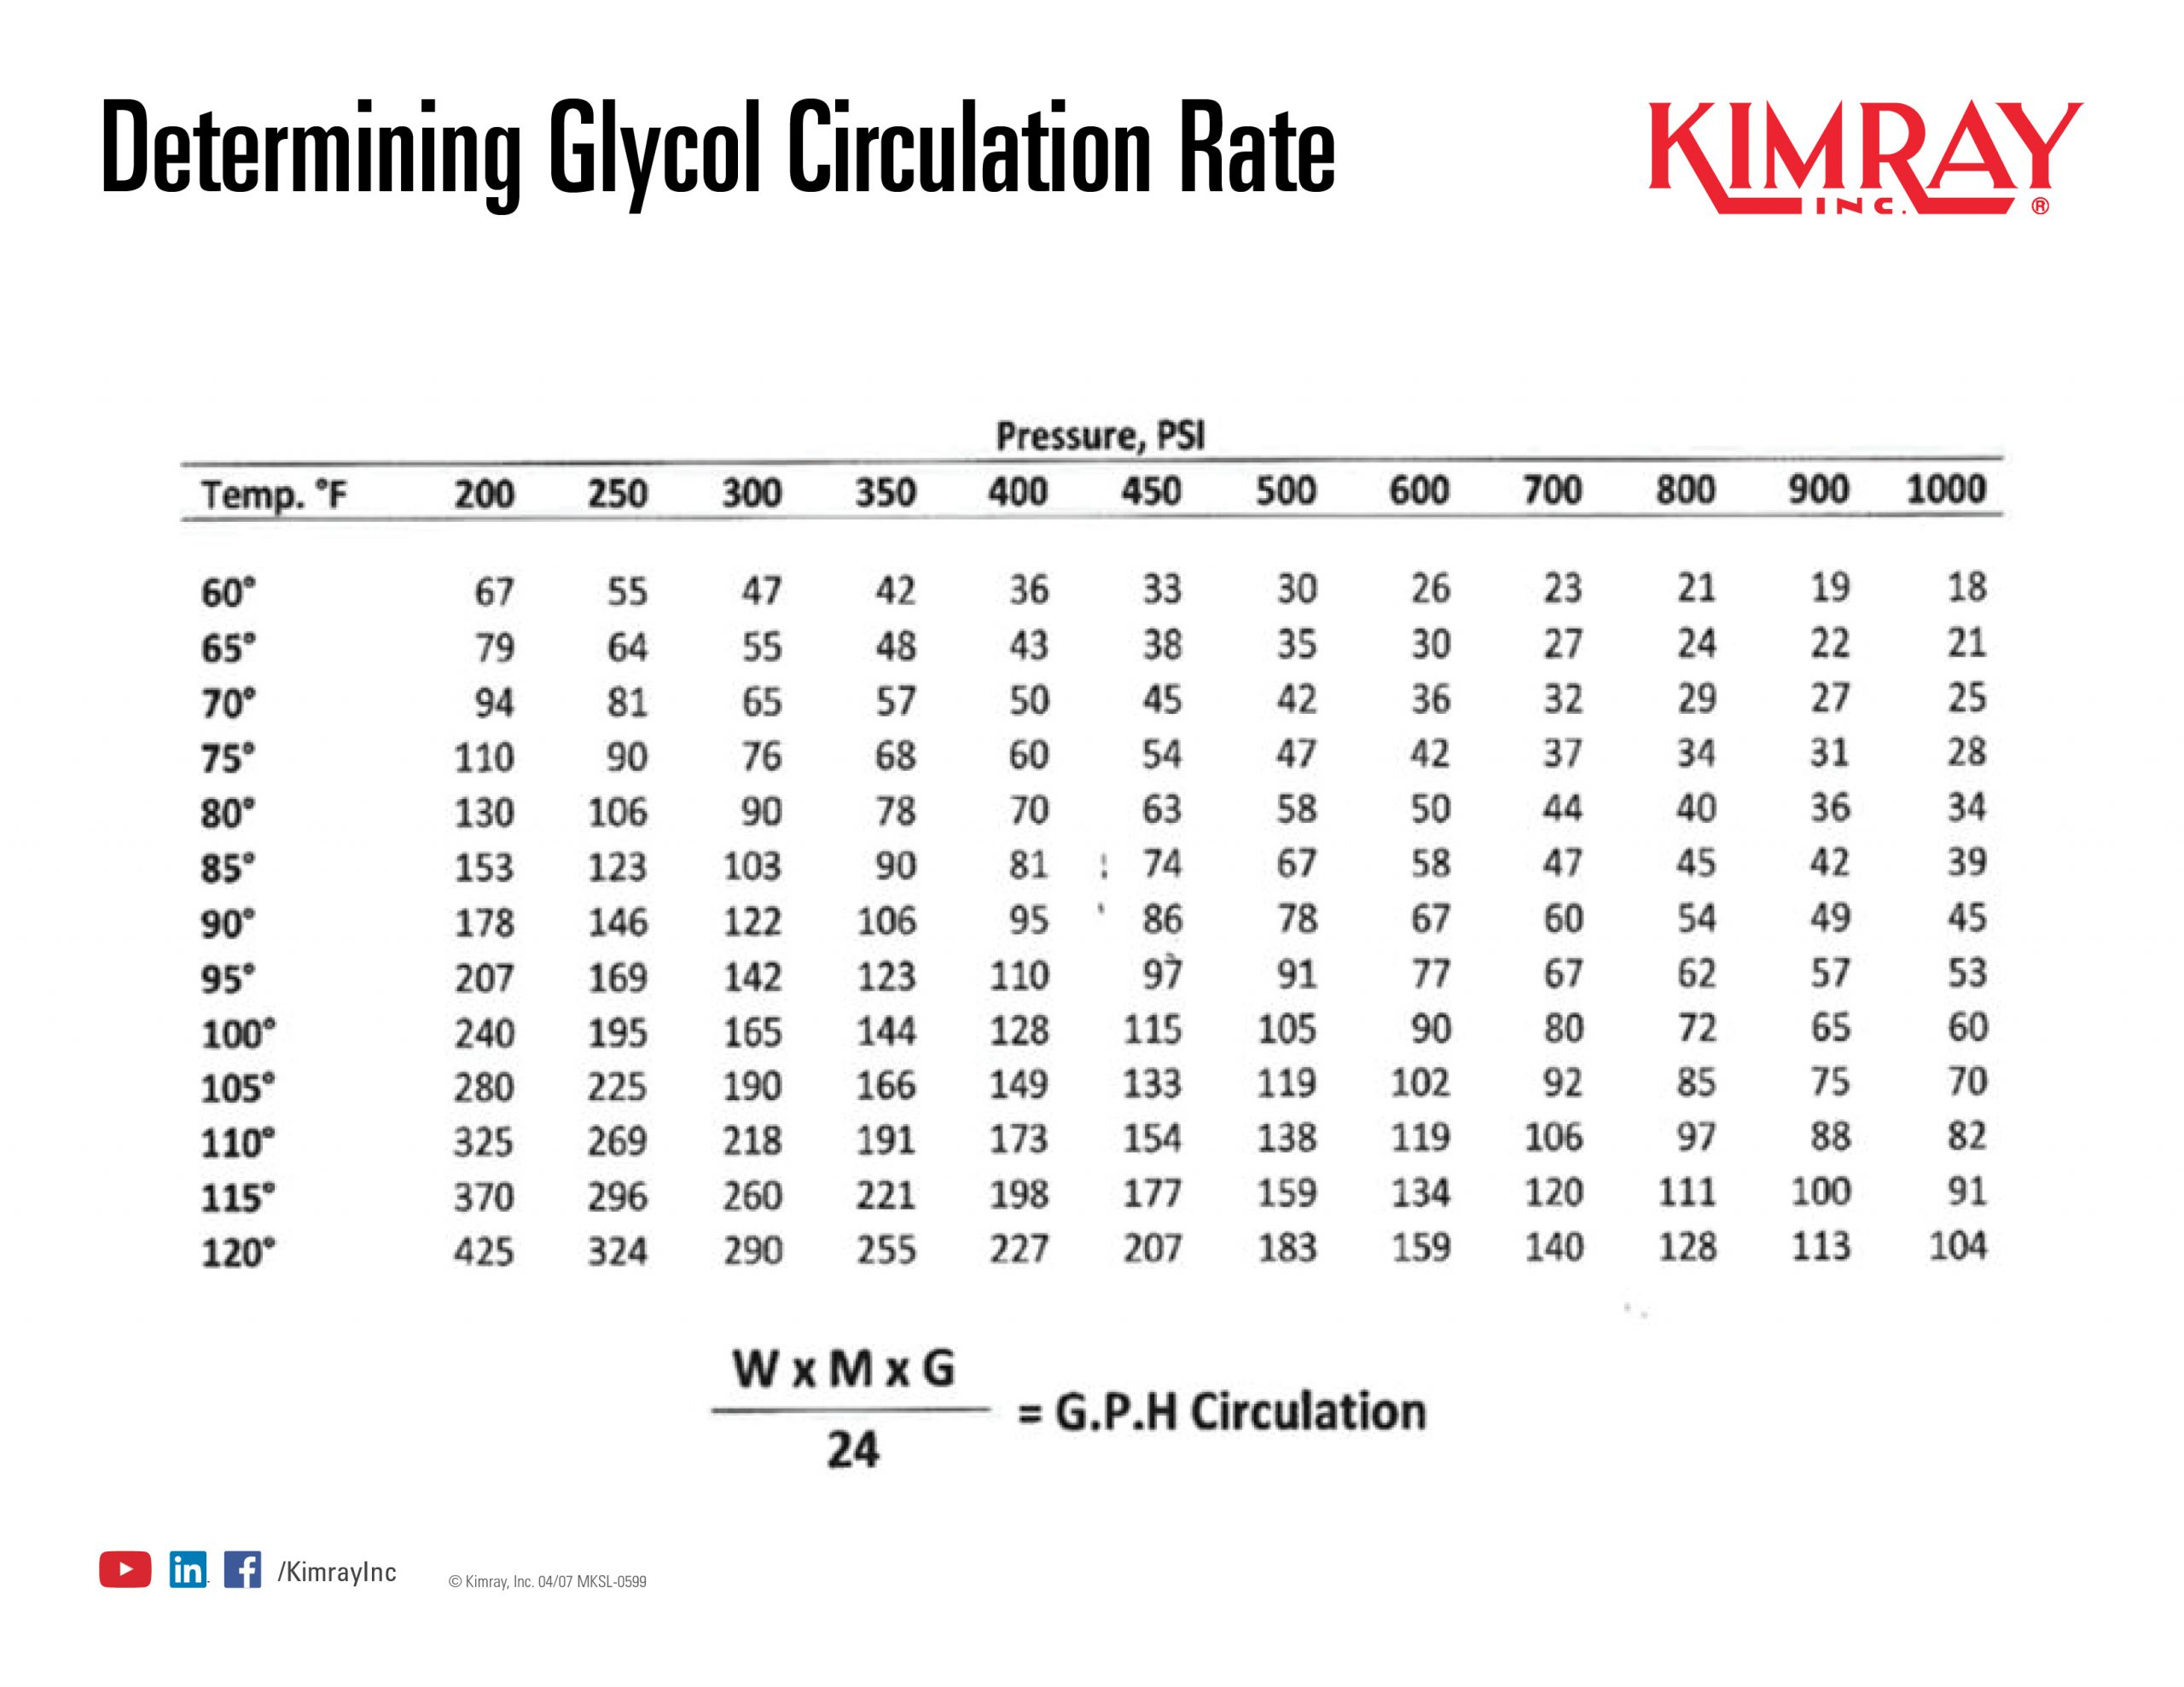 Determining Glycol Circulation Rate